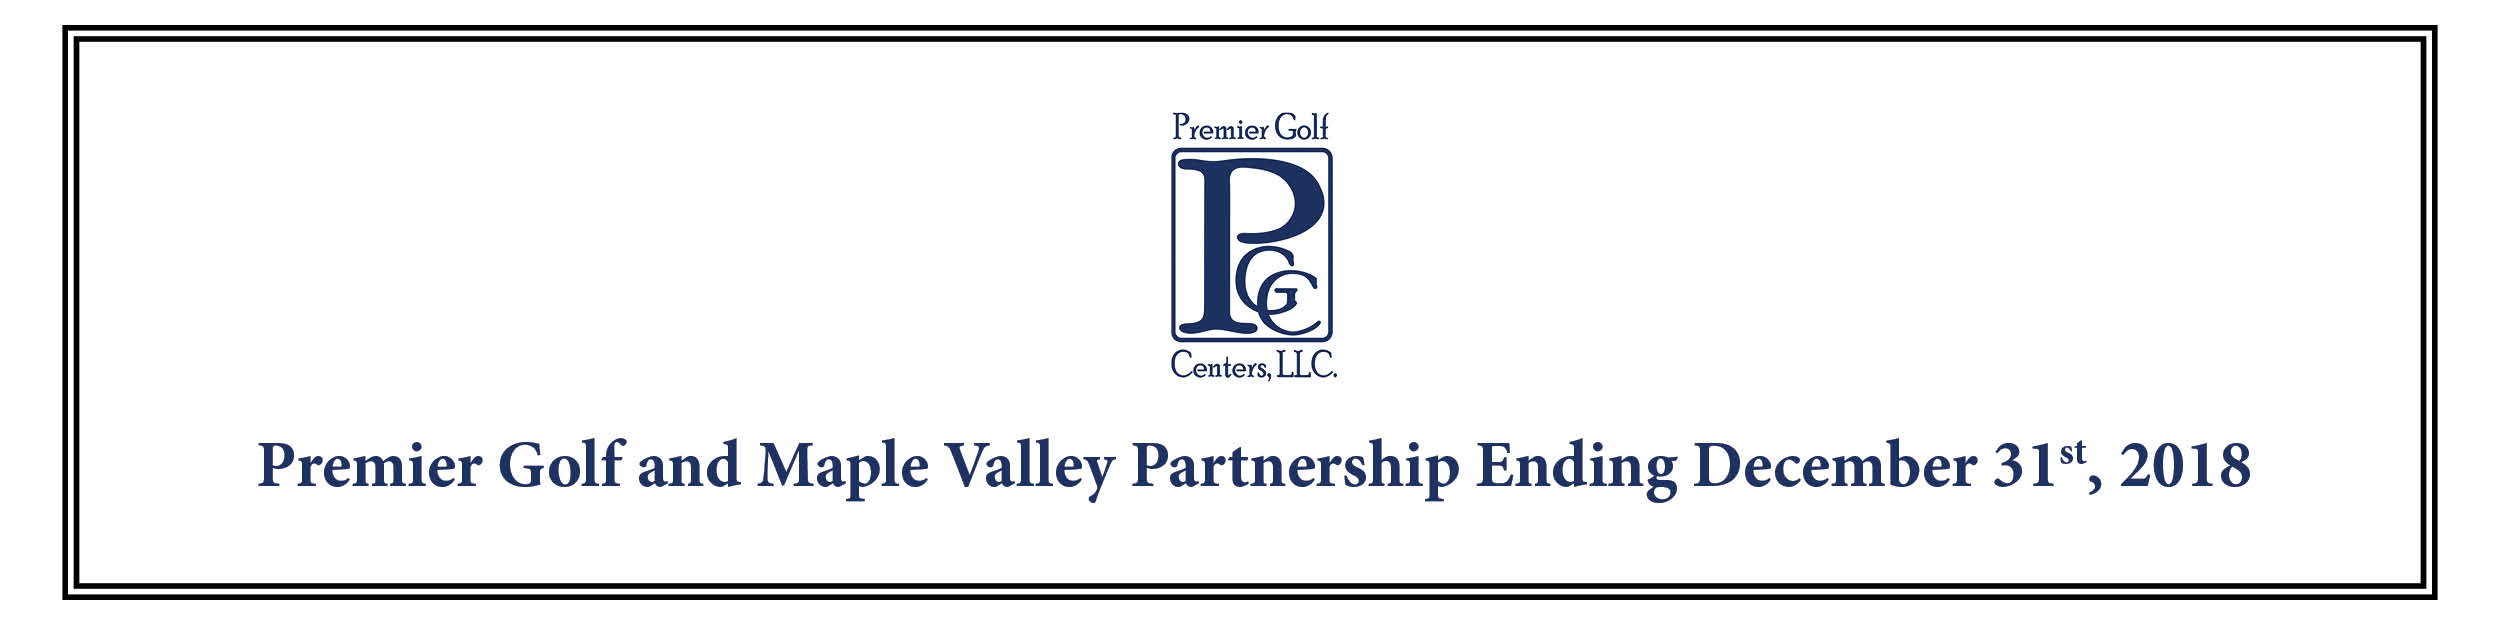 Premier Golf Centers - MV Partnership Ending